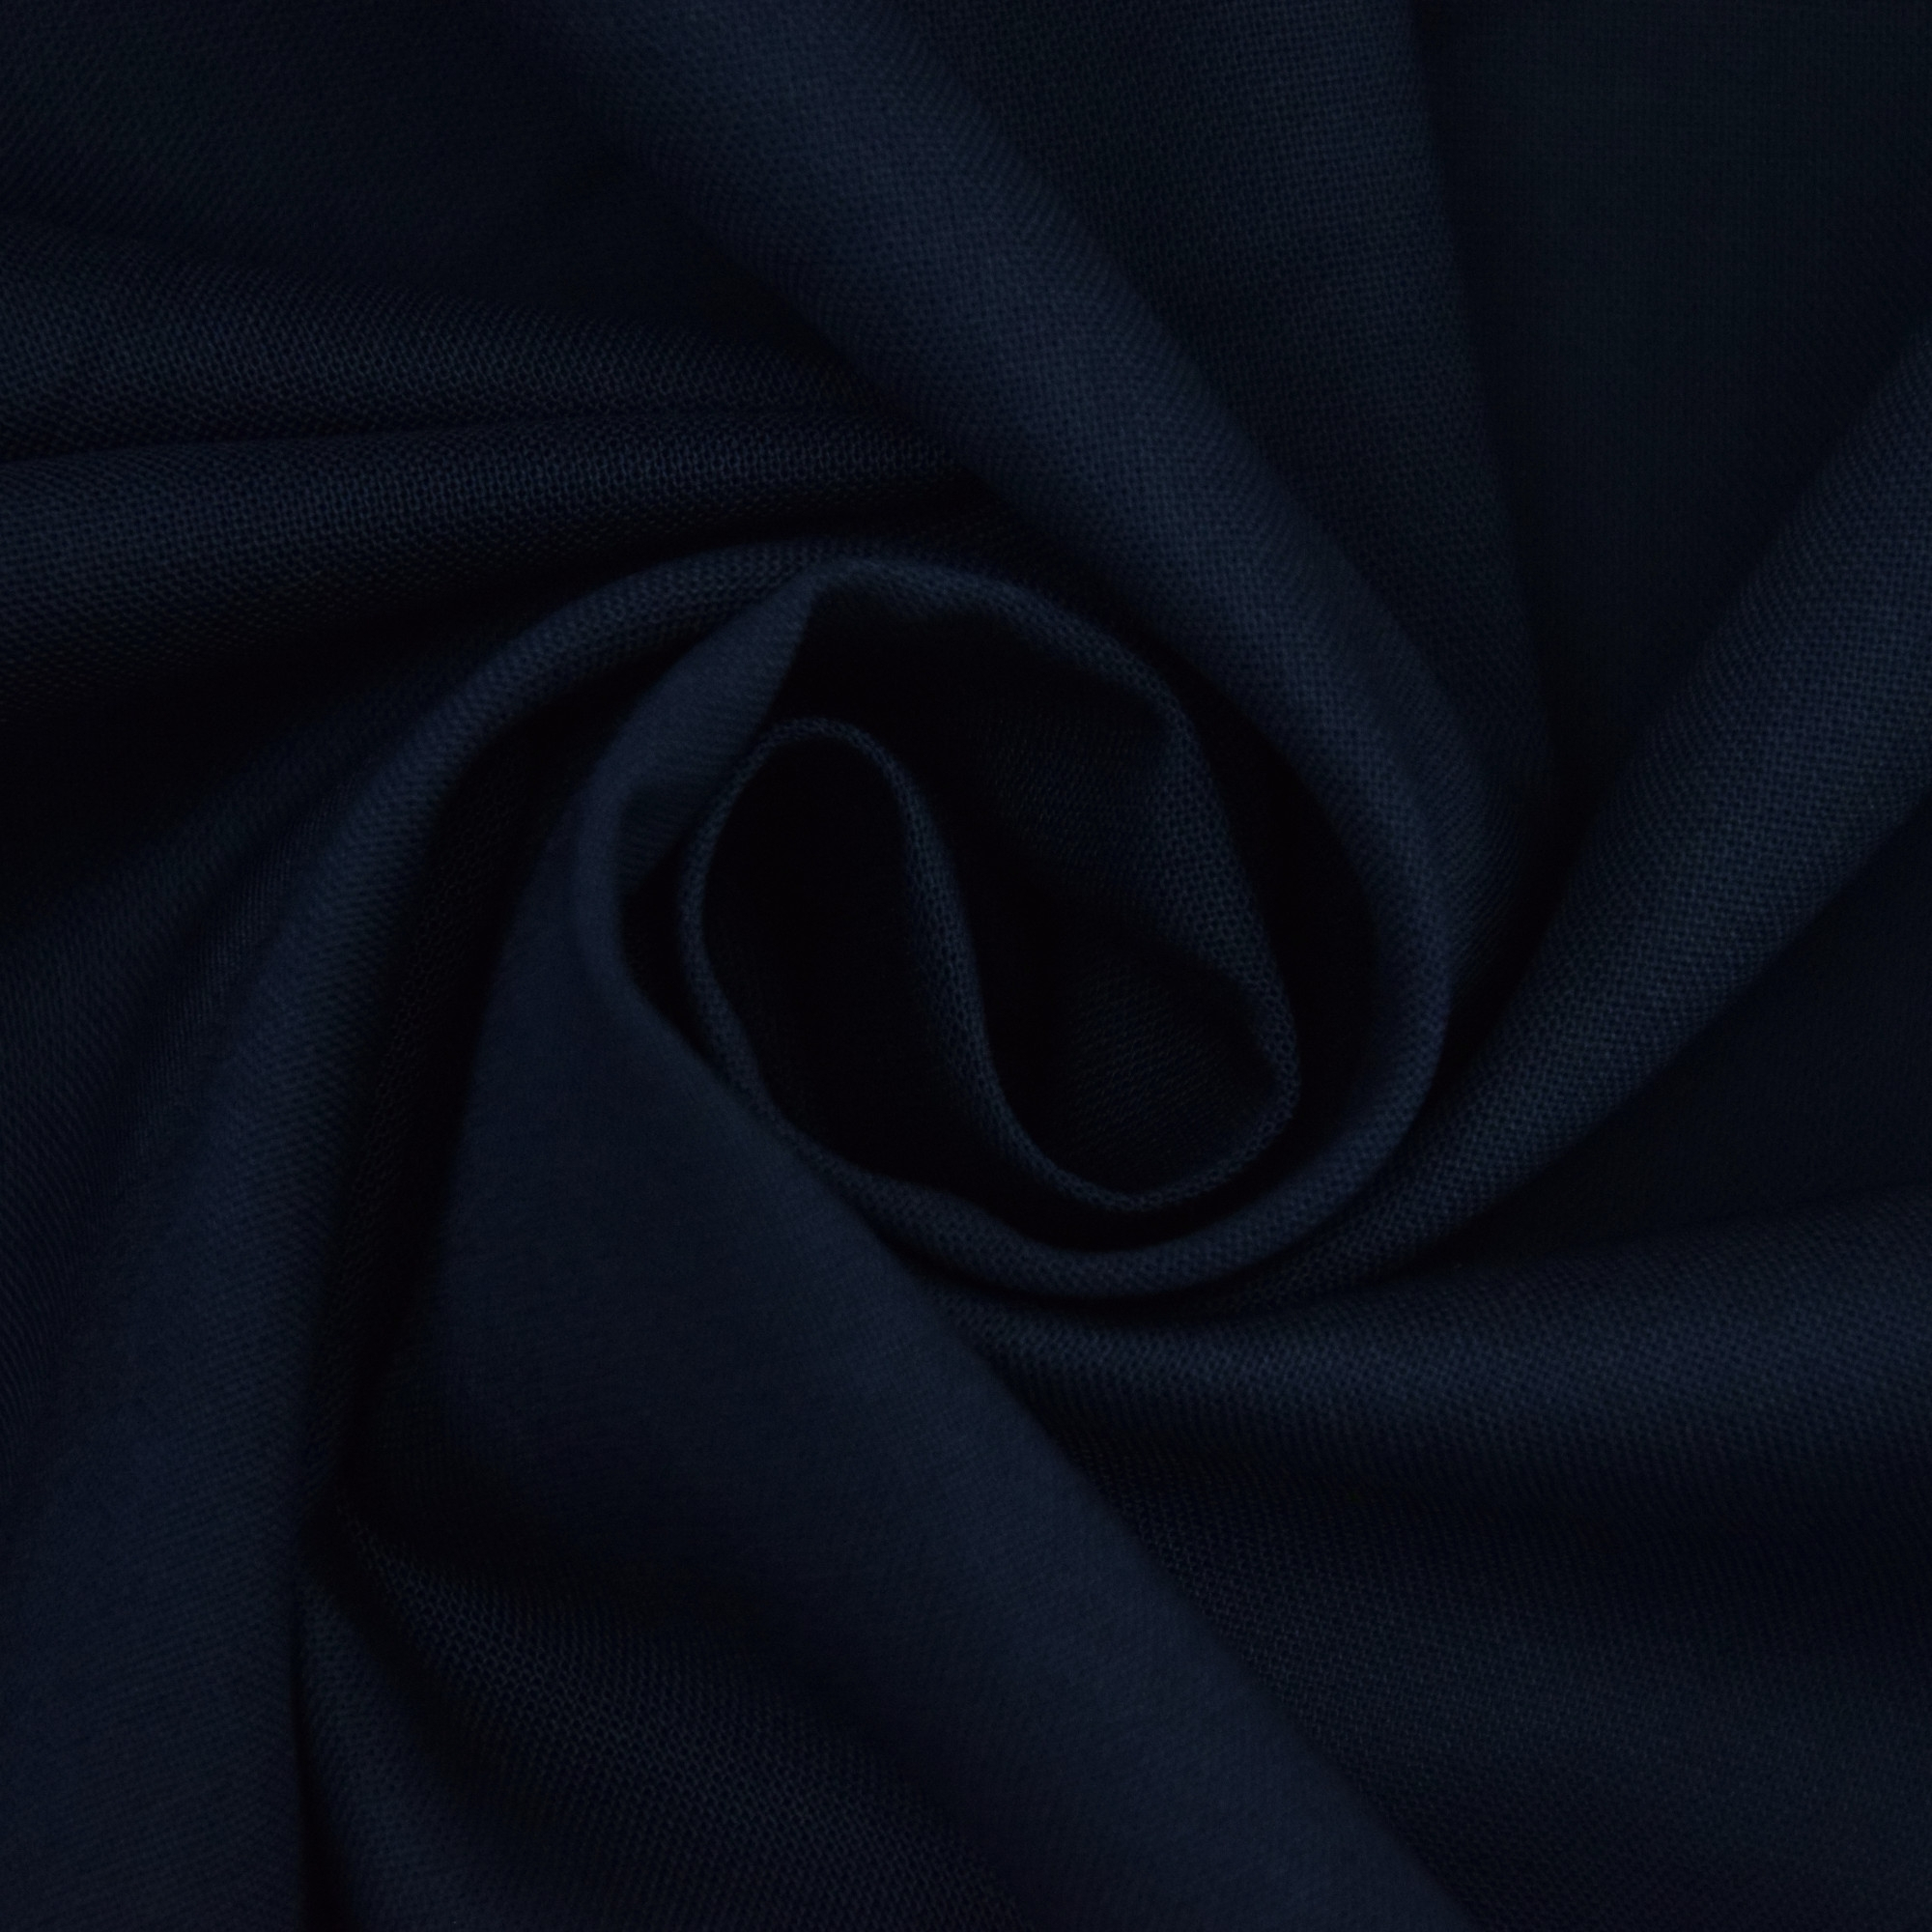 Cotton cretonne navy blue